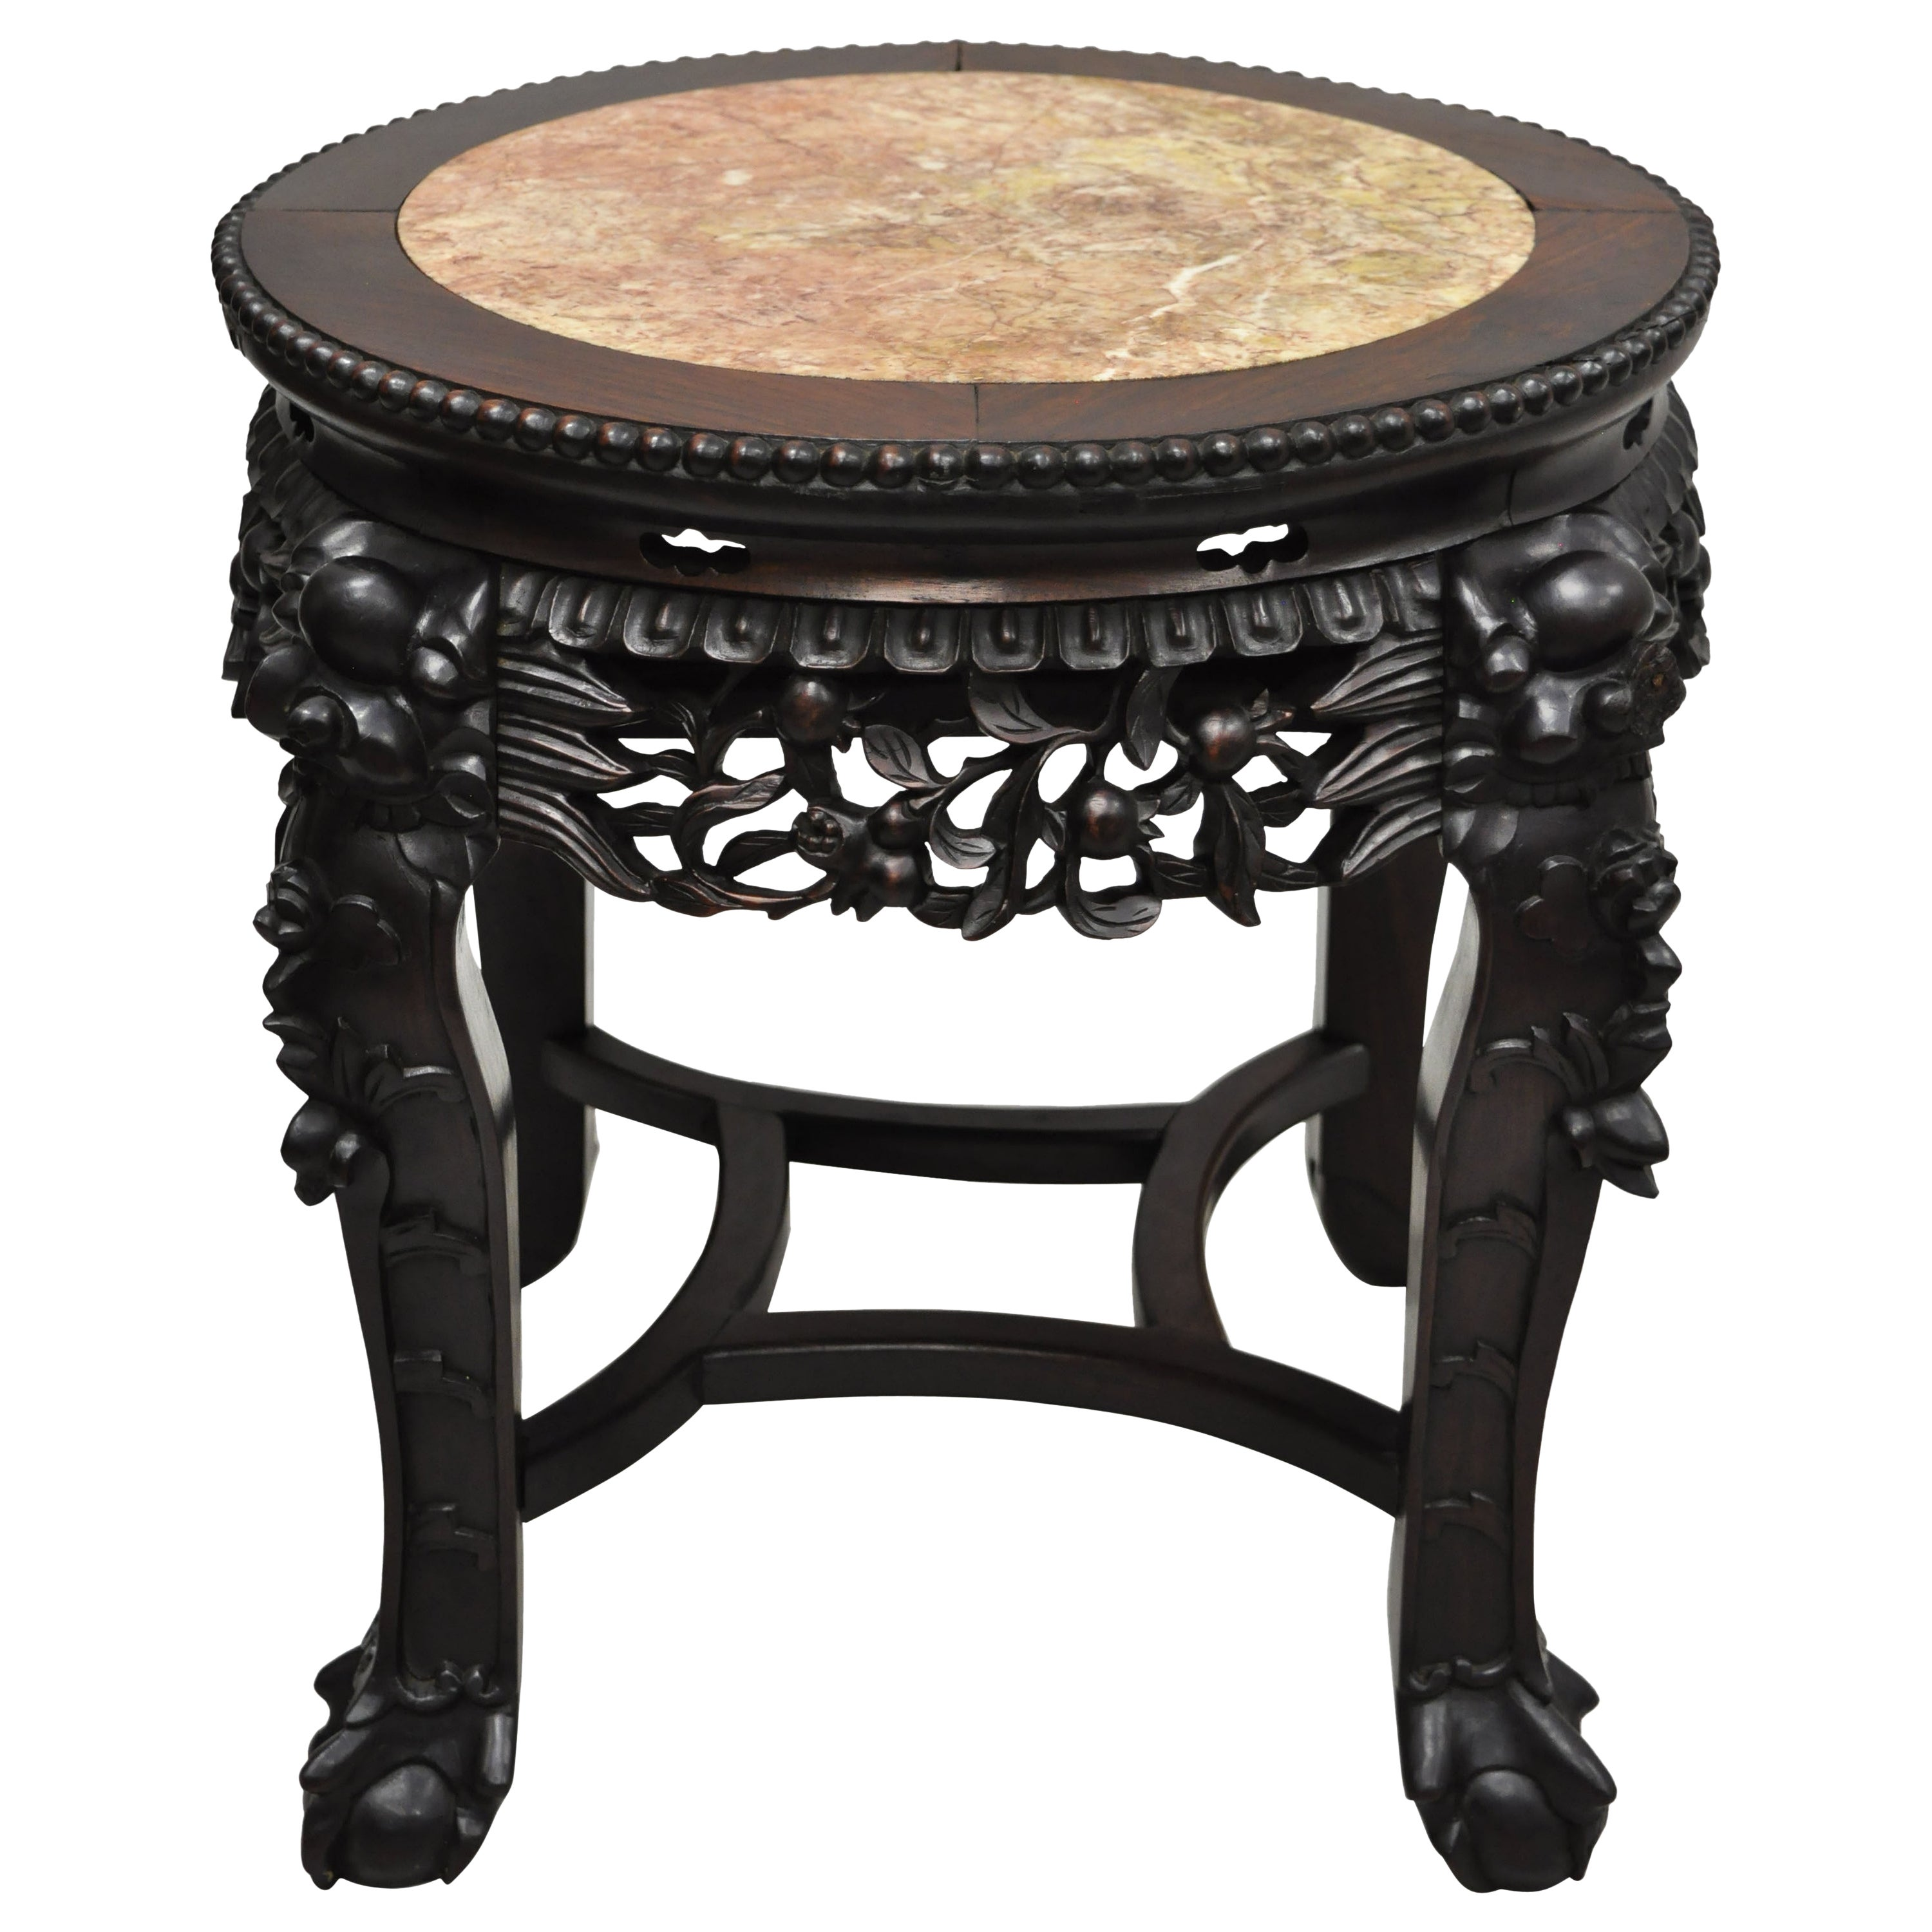 Antique Carved Hardwood Rosewood Marble-Top Chinese Pedestal Table Plant Stand B